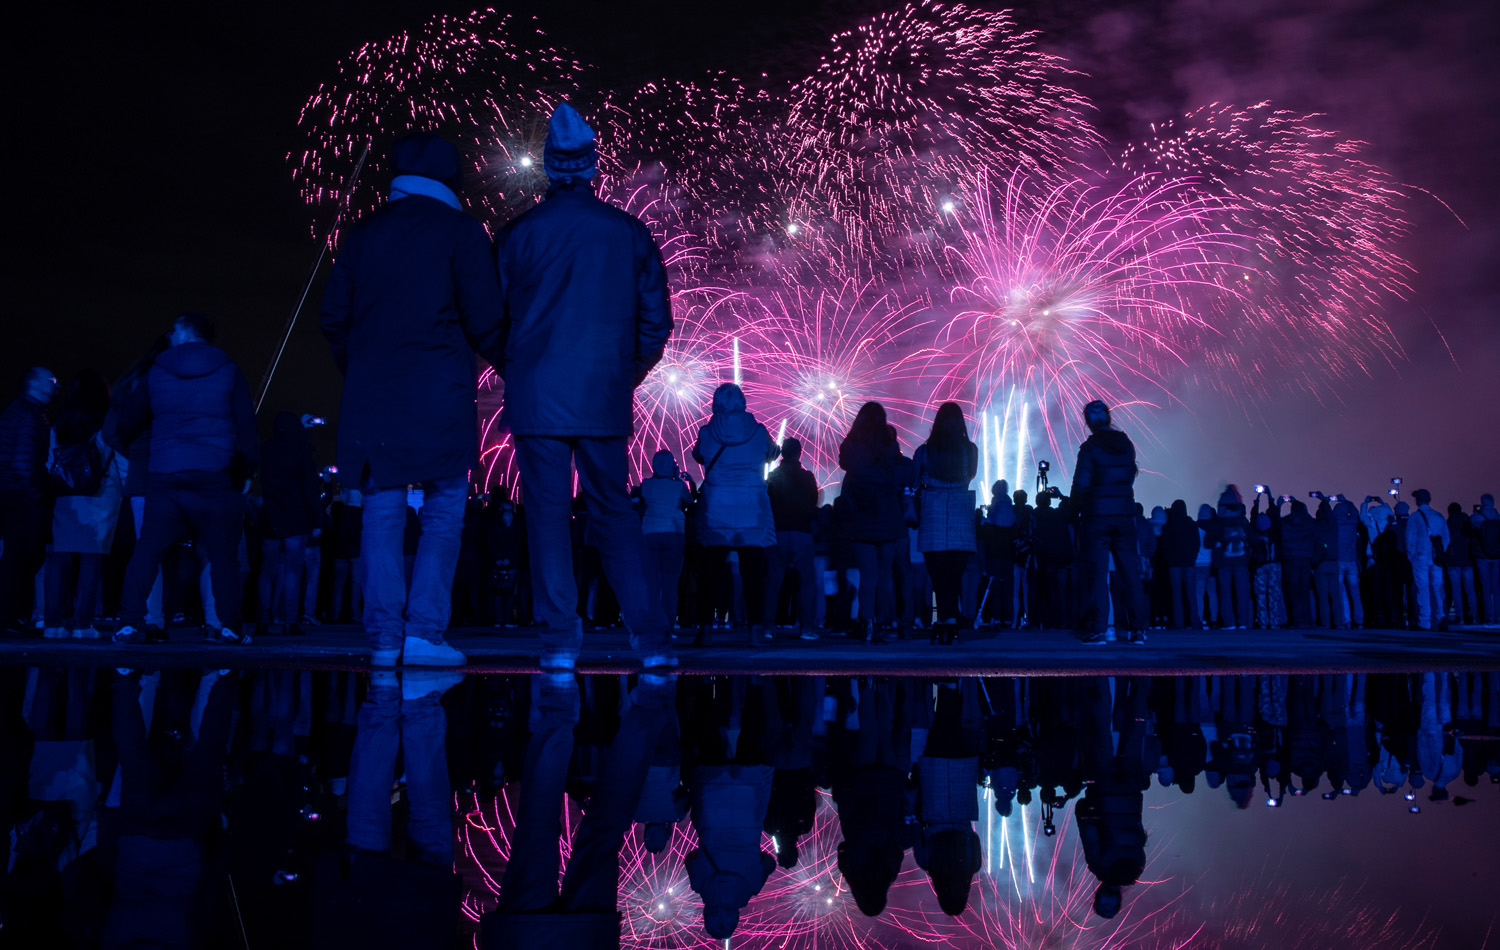 Spectators watch fireworks at the International show Circle of Light in Moscow